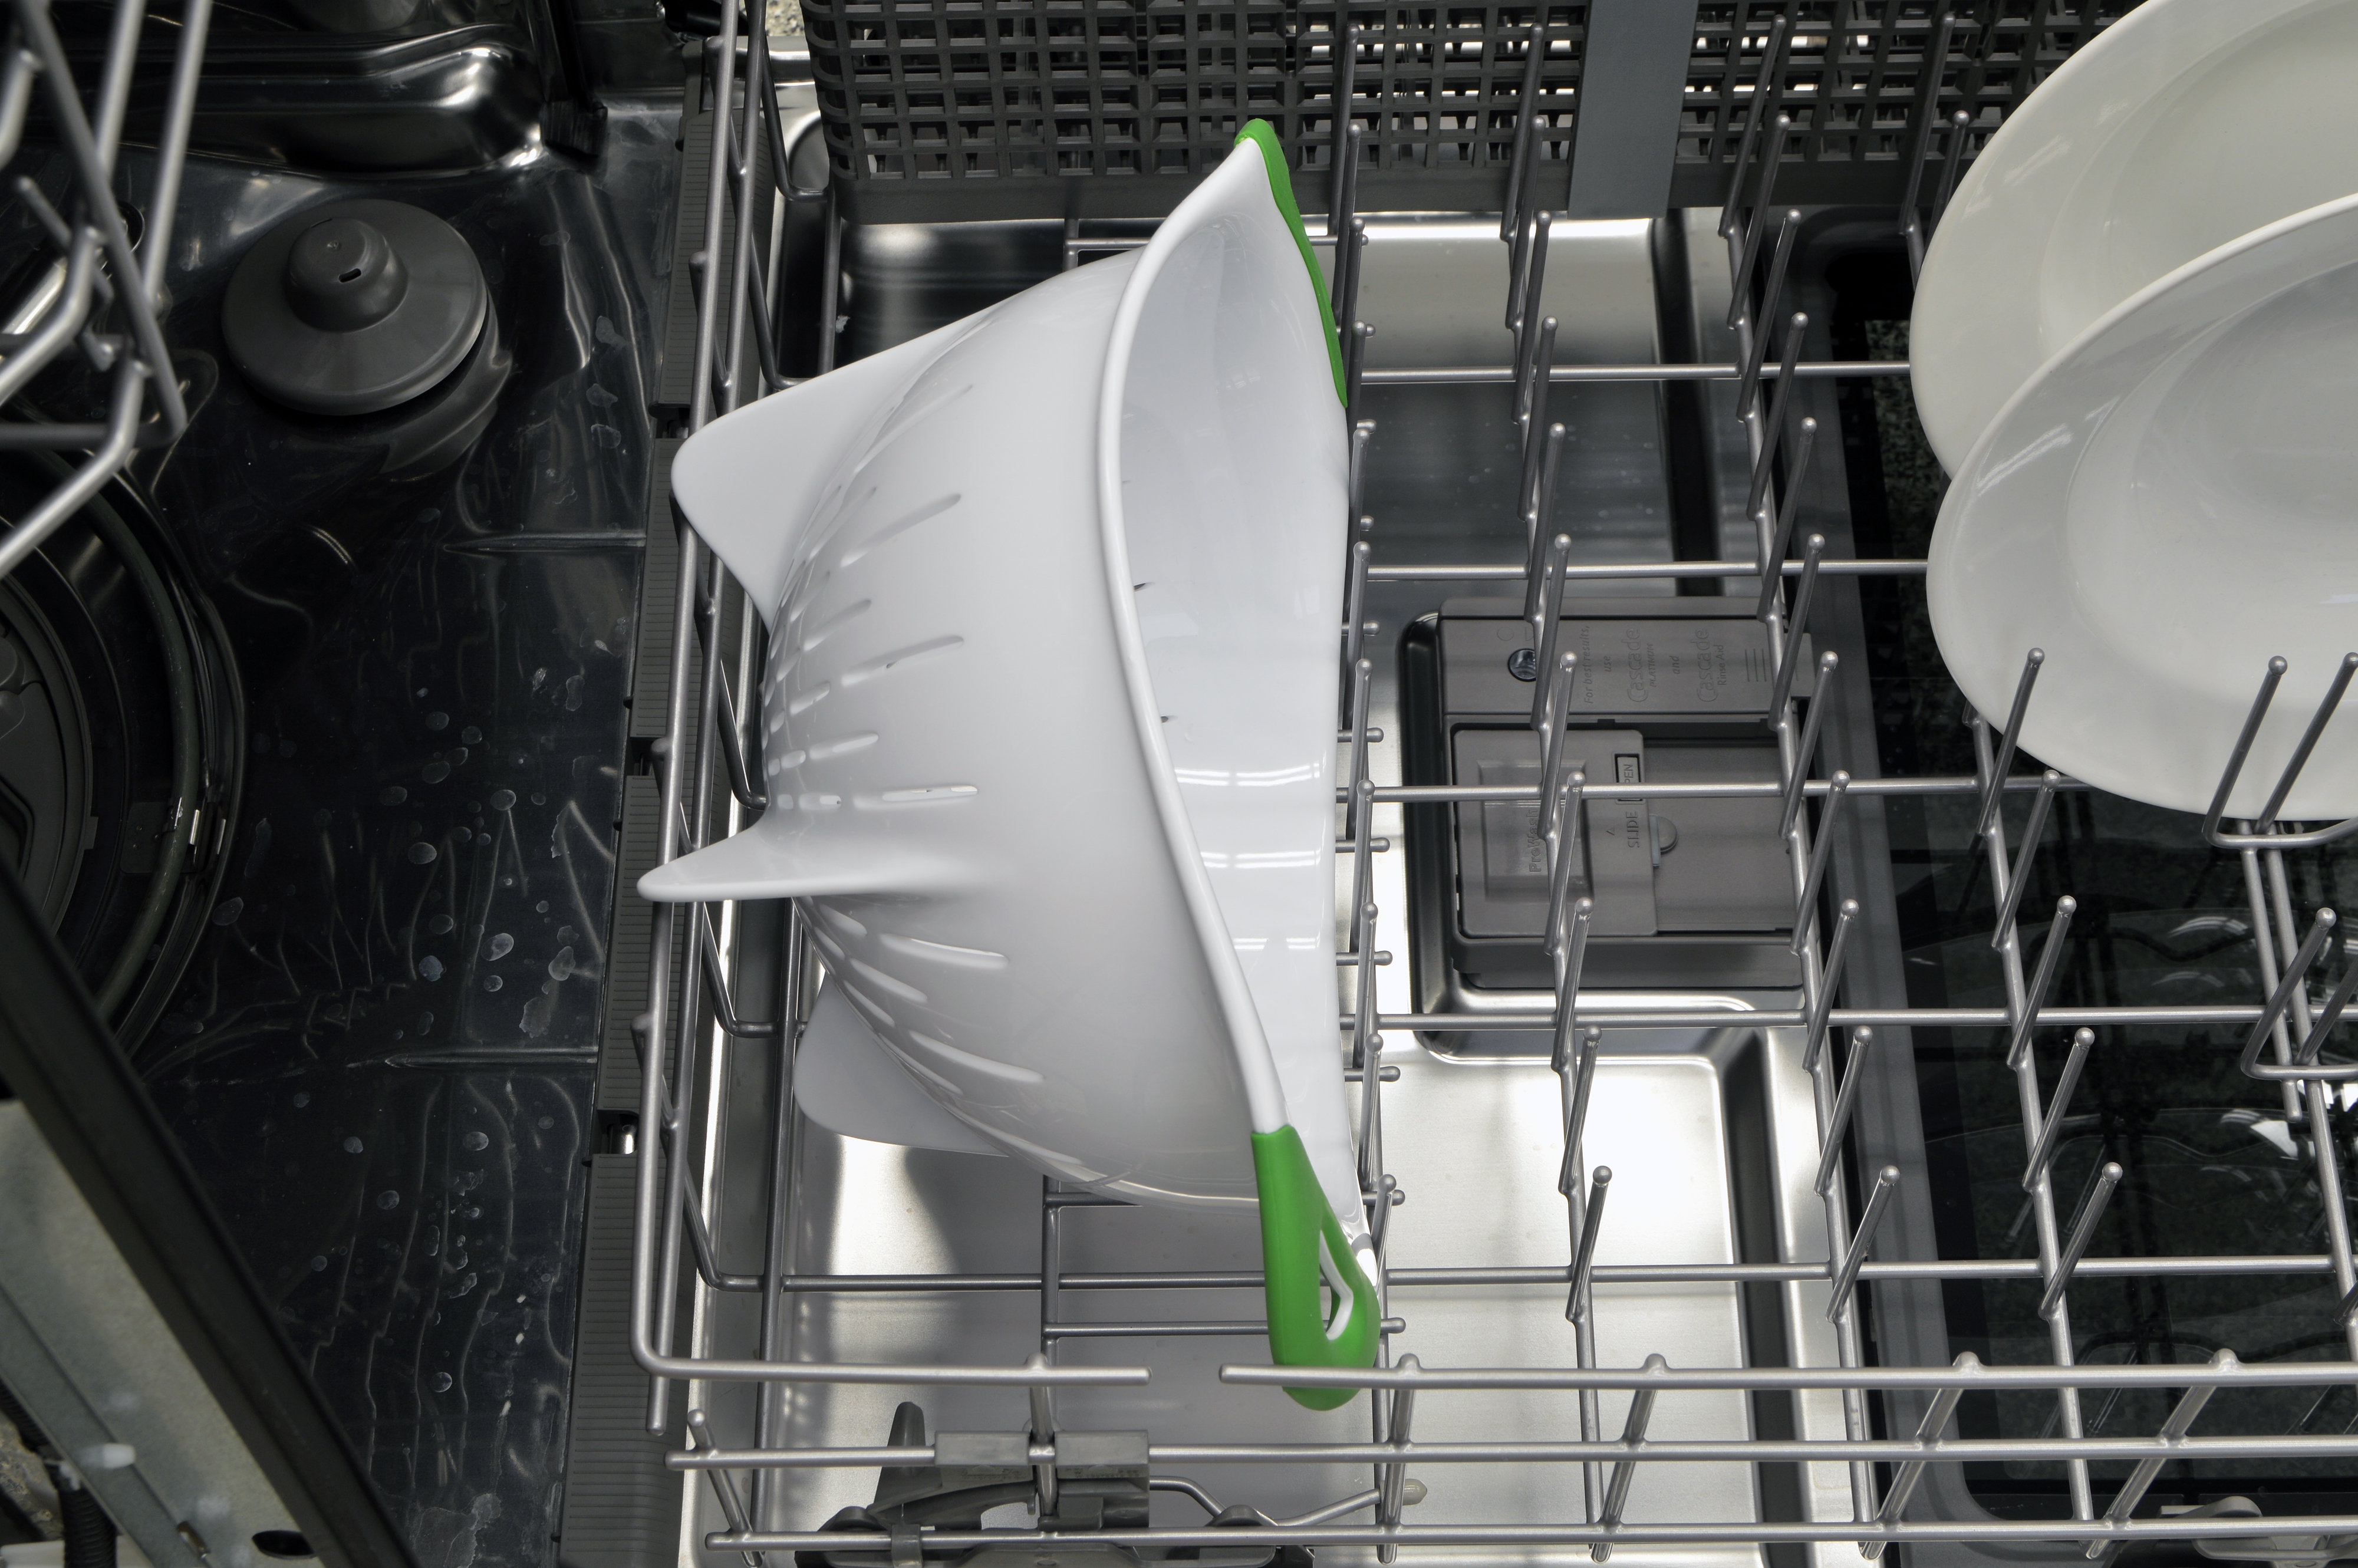 Colander sitting in the lower rack